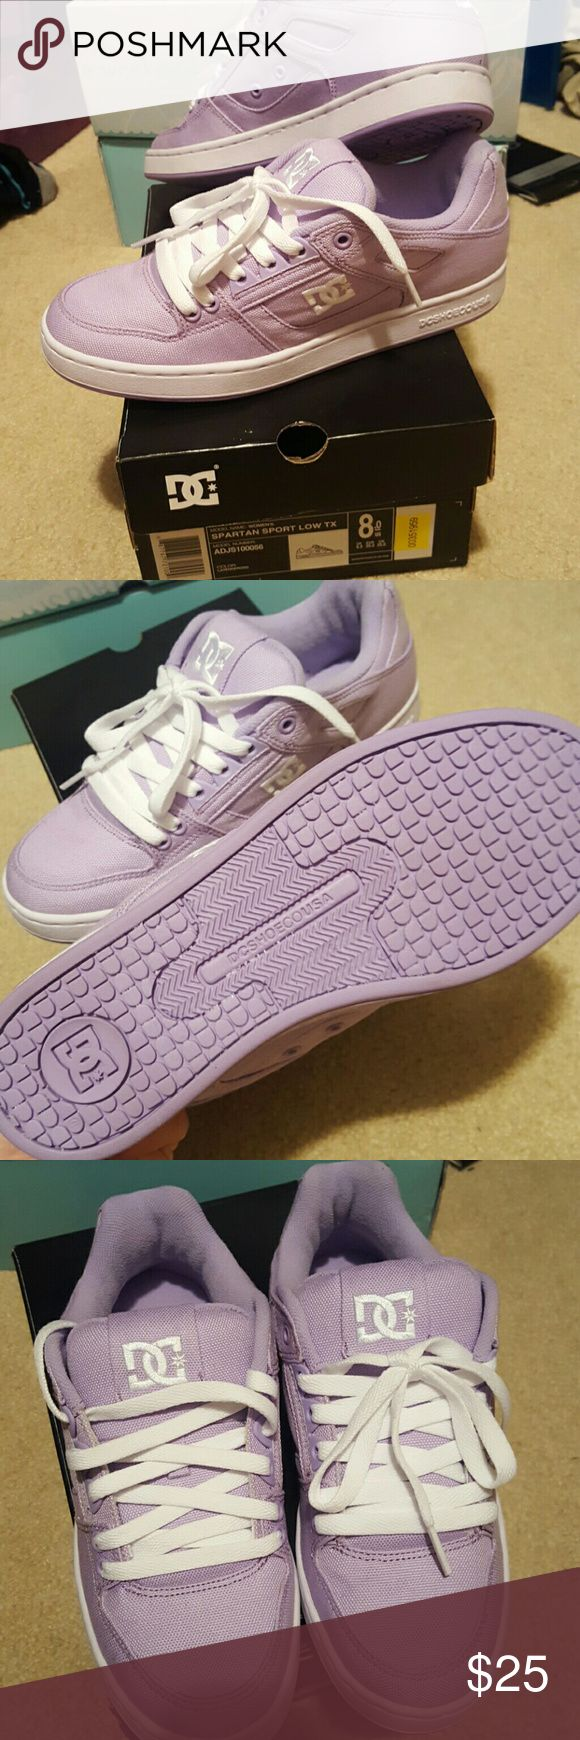 Purple DC Shoes New in box, lavender, womens size 8 DC Shoes Sneakers